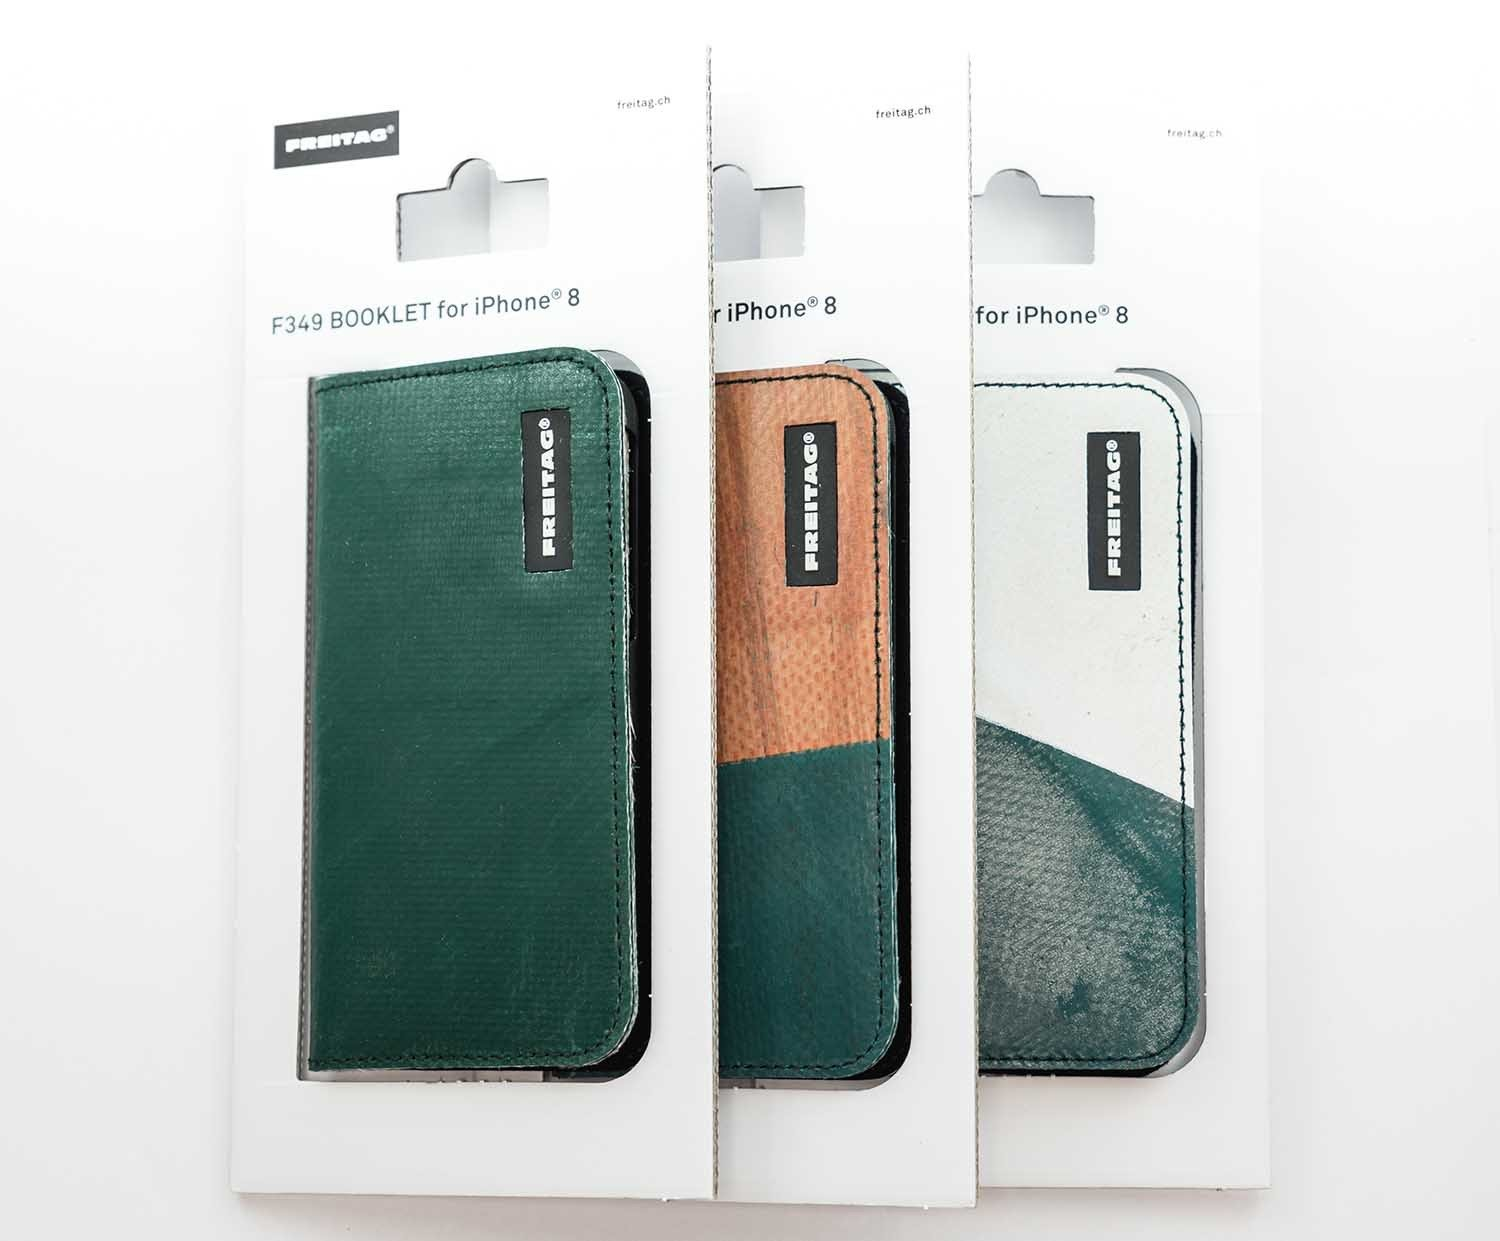 freitag f349 booklet iphone 6 6s 7 8 hunters green. Black Bedroom Furniture Sets. Home Design Ideas